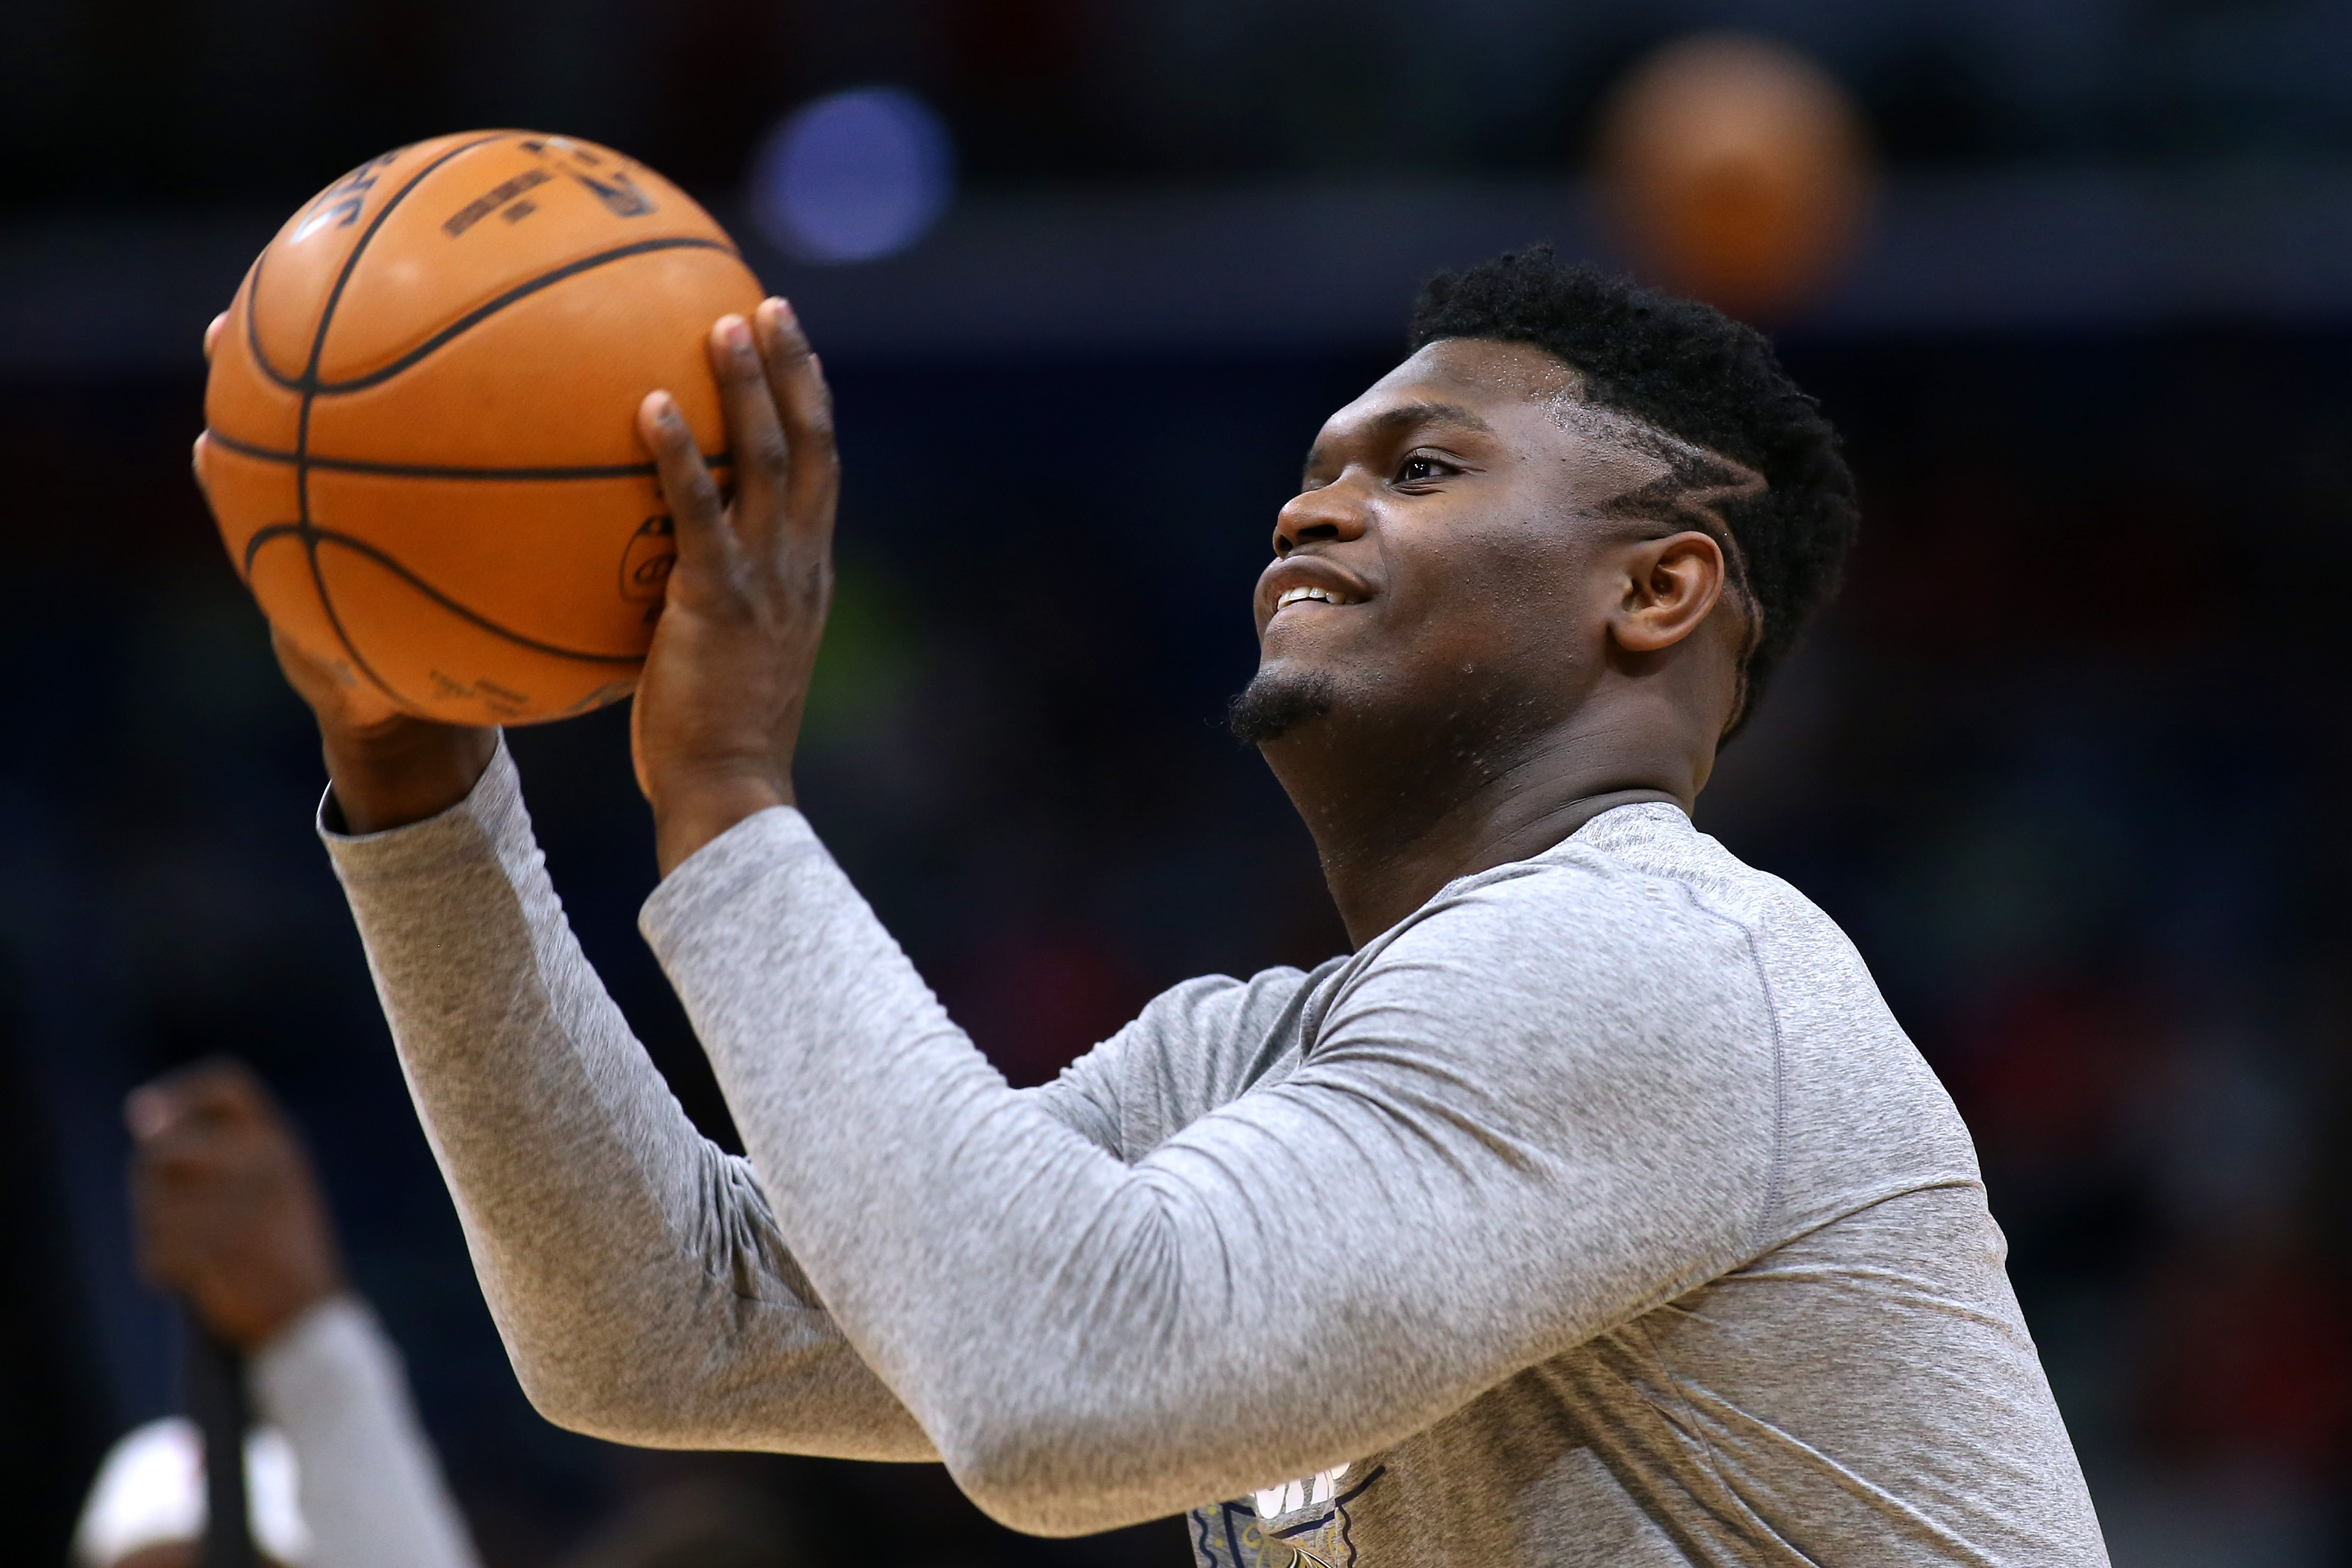 We all know Zion Williamson can dunk on whoever he pleases, but he's been working hard on improving another skill ahead of the NBA restart.